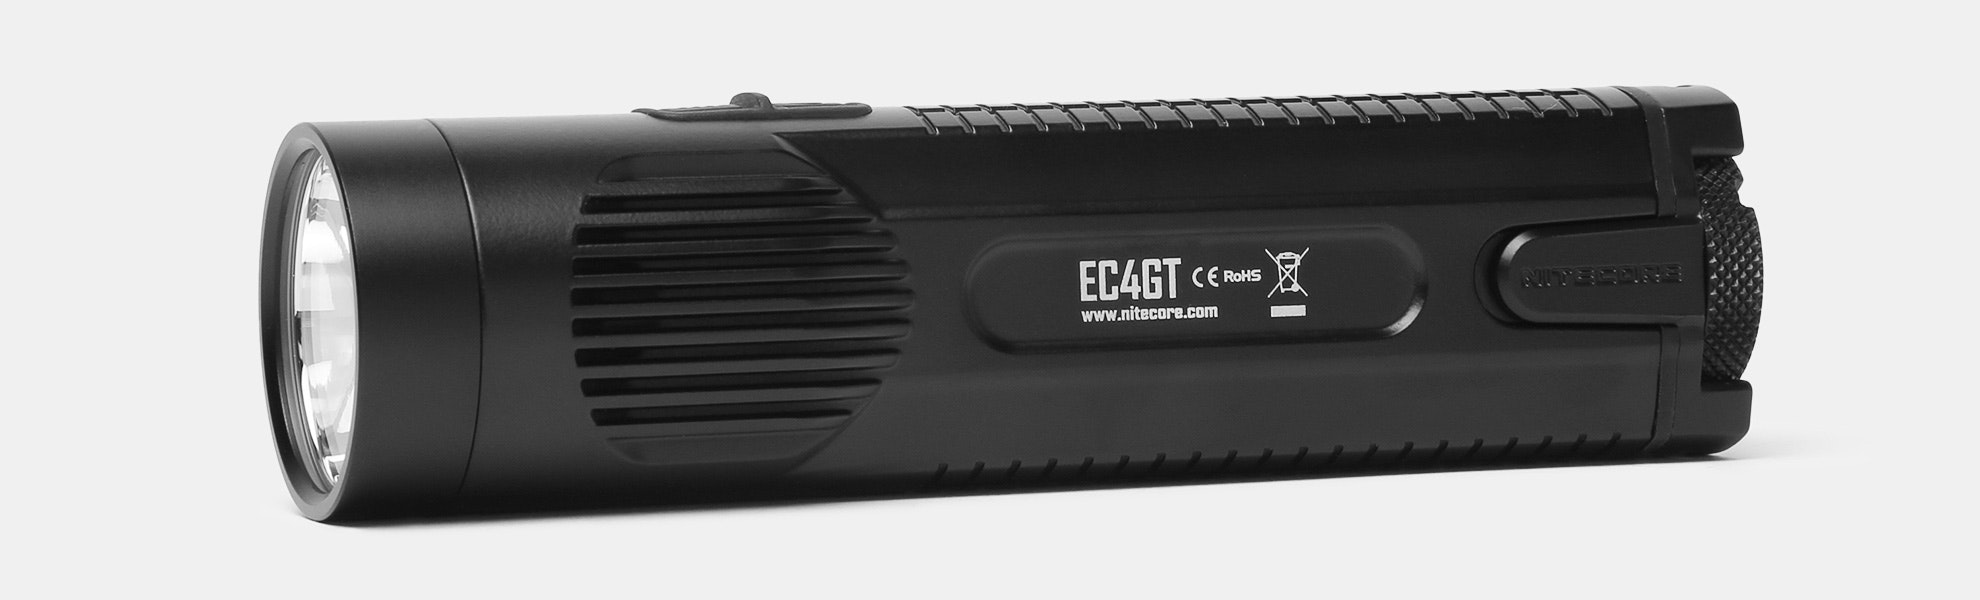 Nitecore EC4GT LED Flashlight